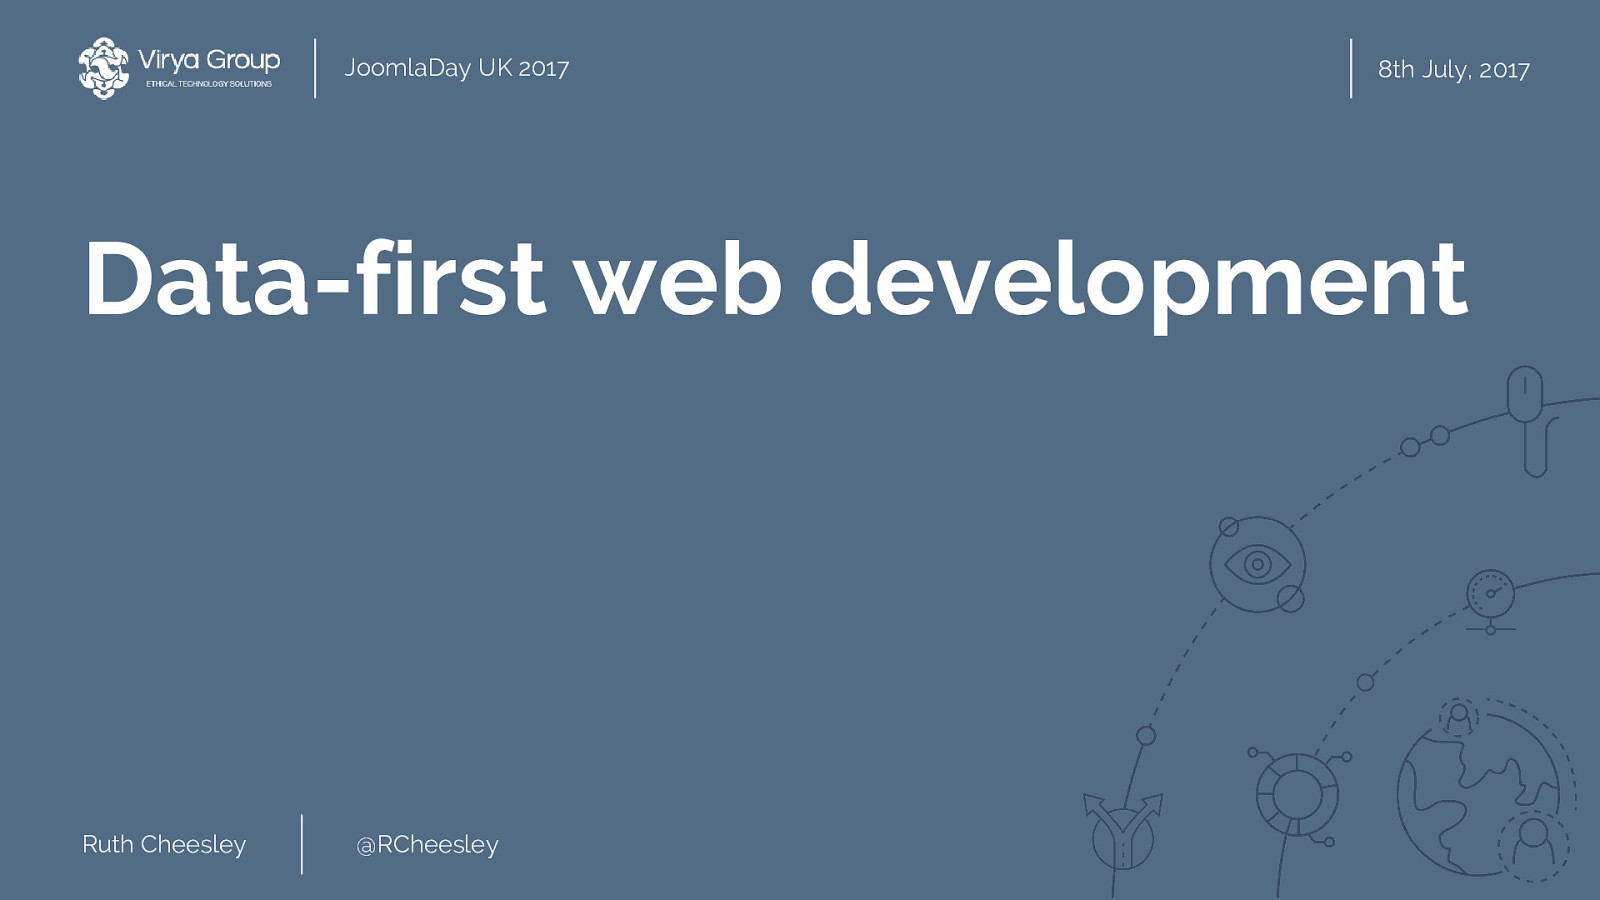 Data-first web development